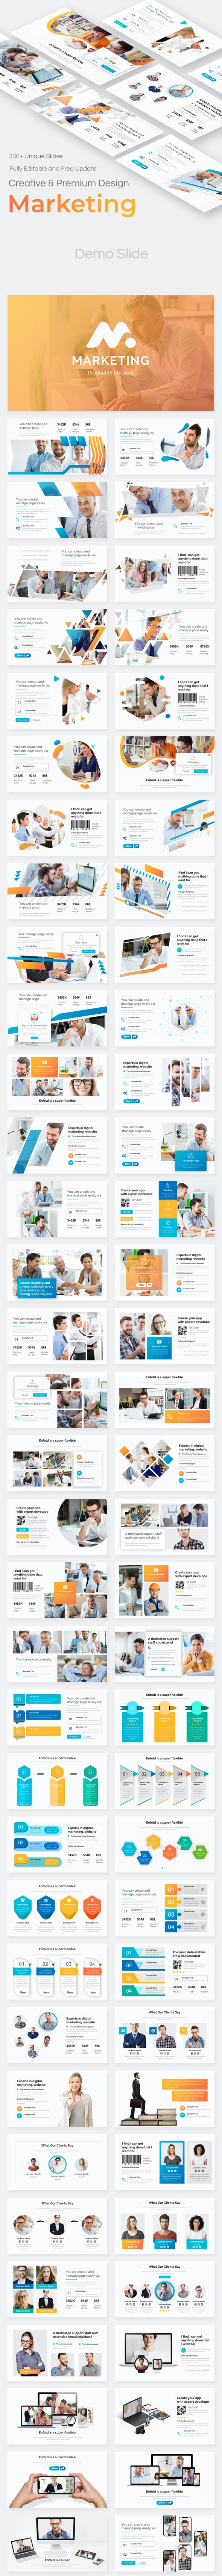 Product Marketing Pitch Deck Powerpoint Template - Business PowerPoint Templates